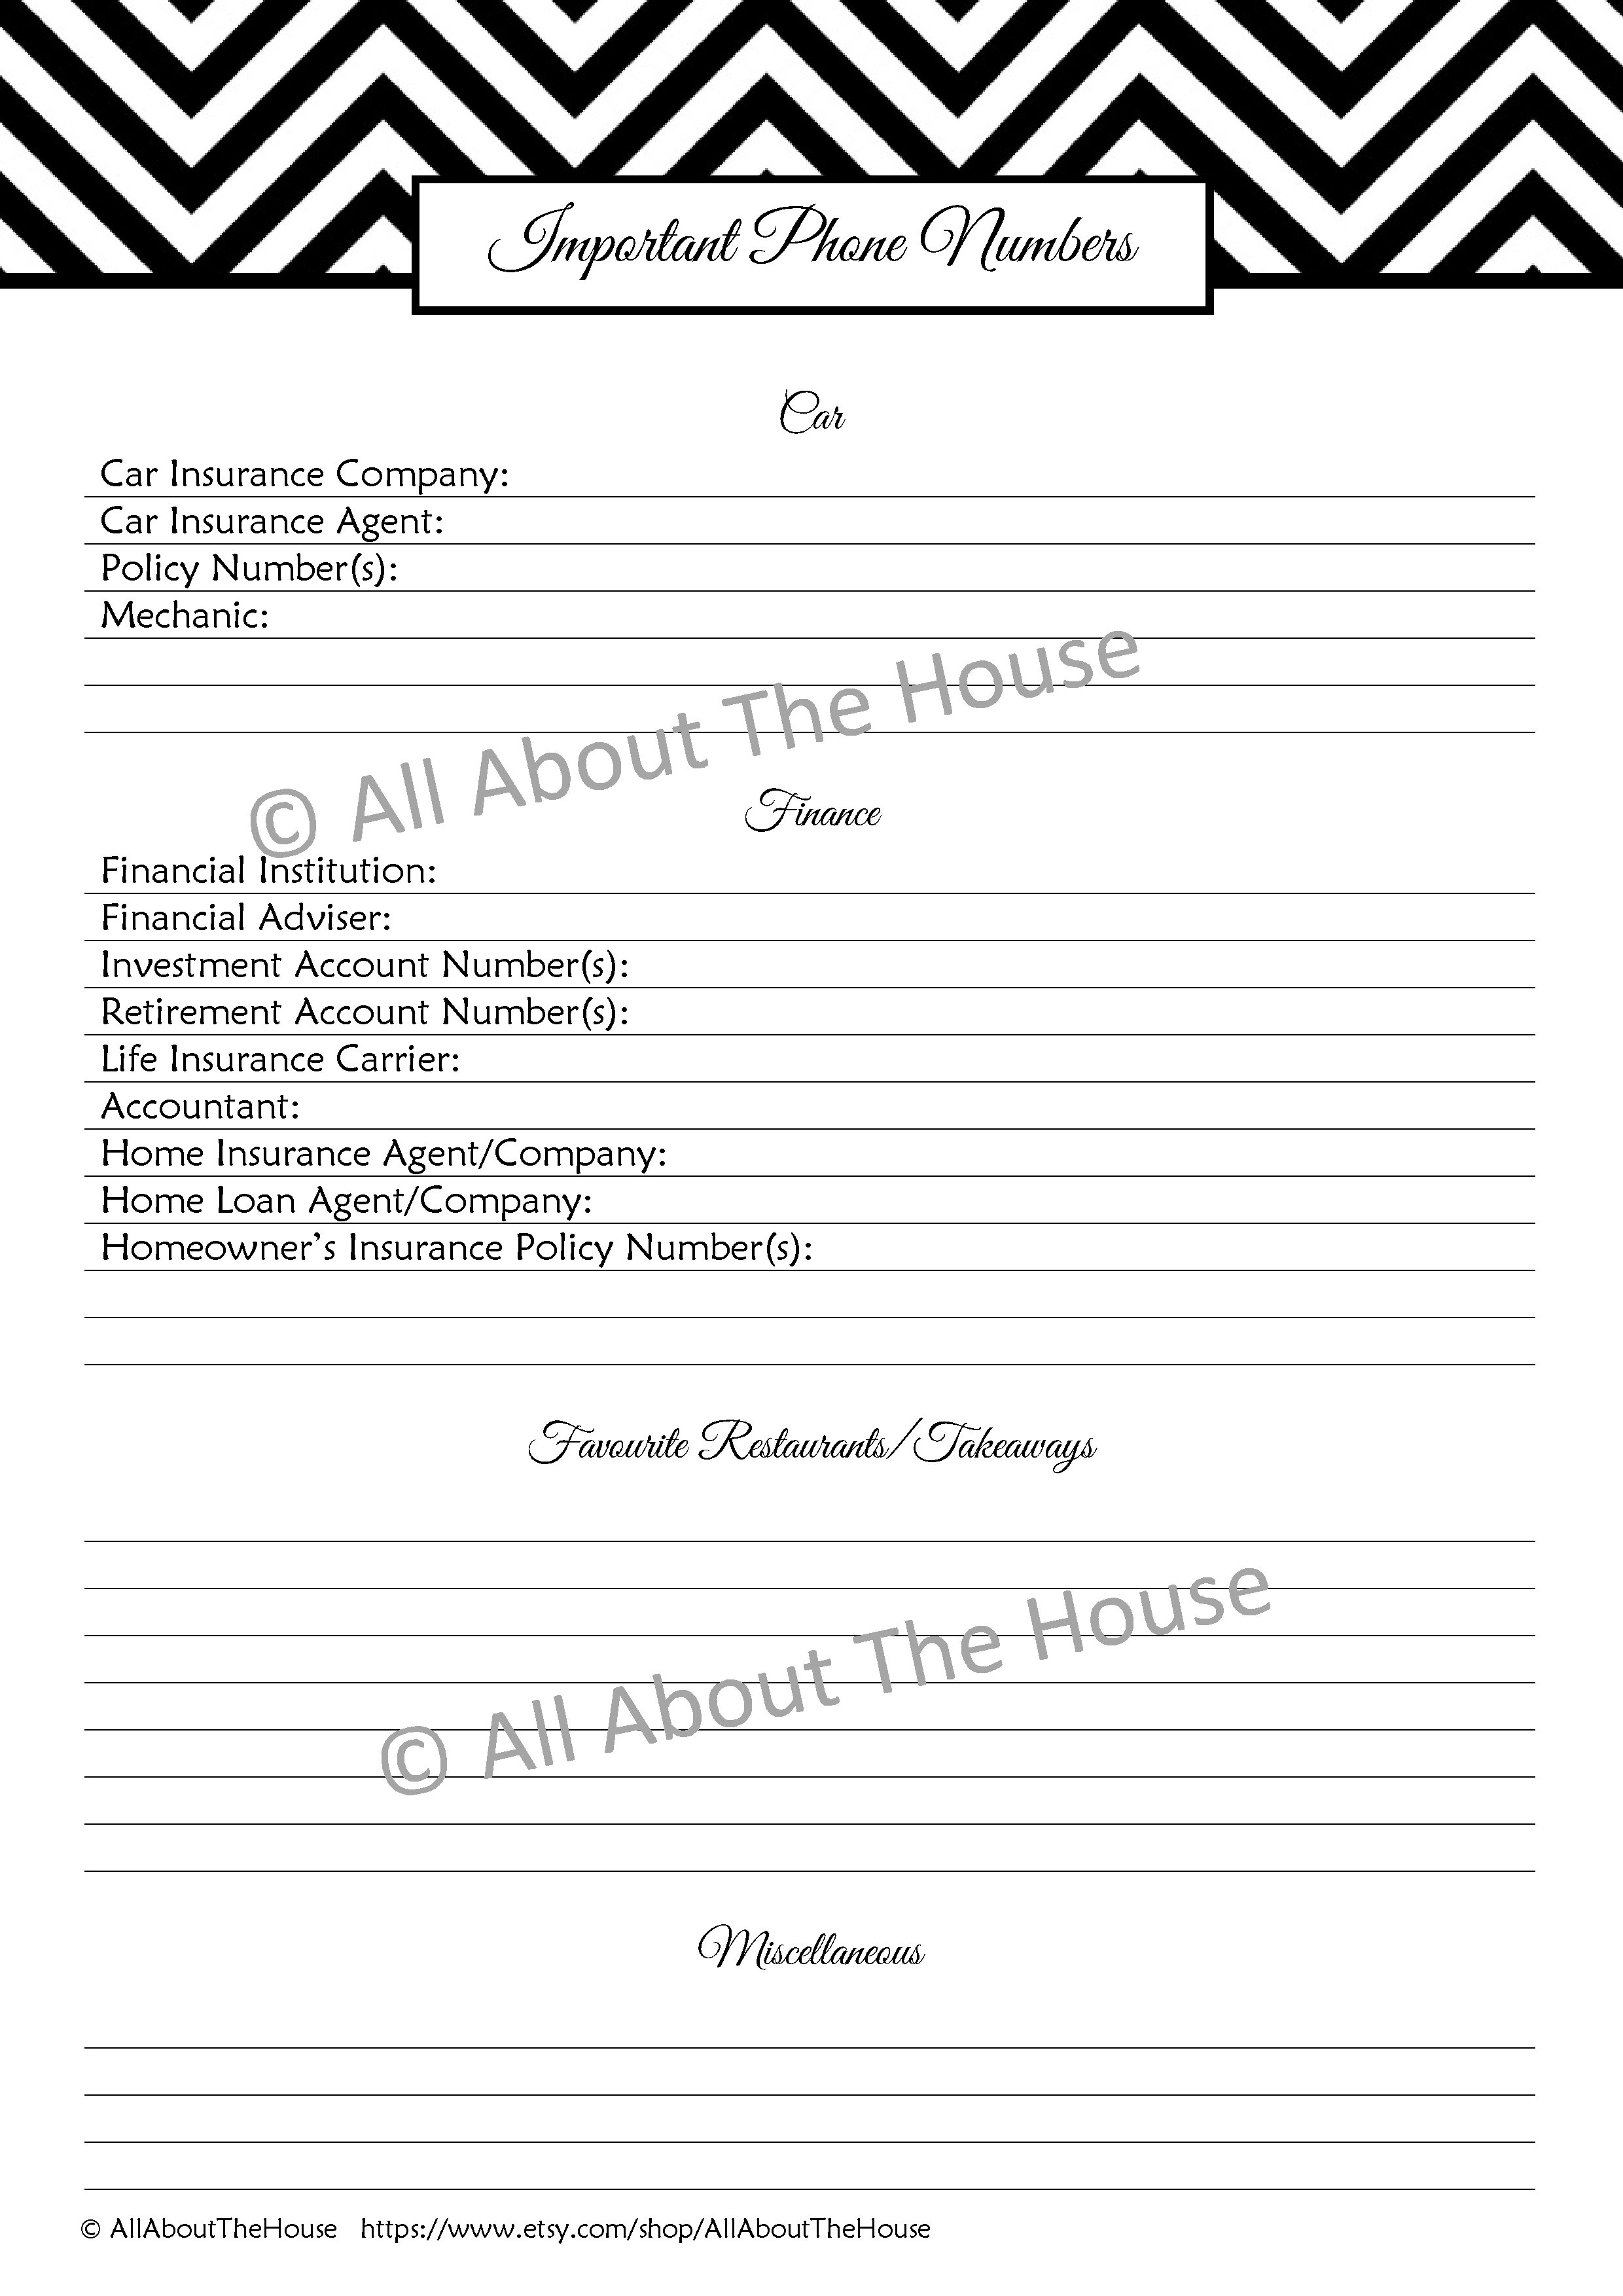 Important Phone Numbers Allaboutthehouse Printables